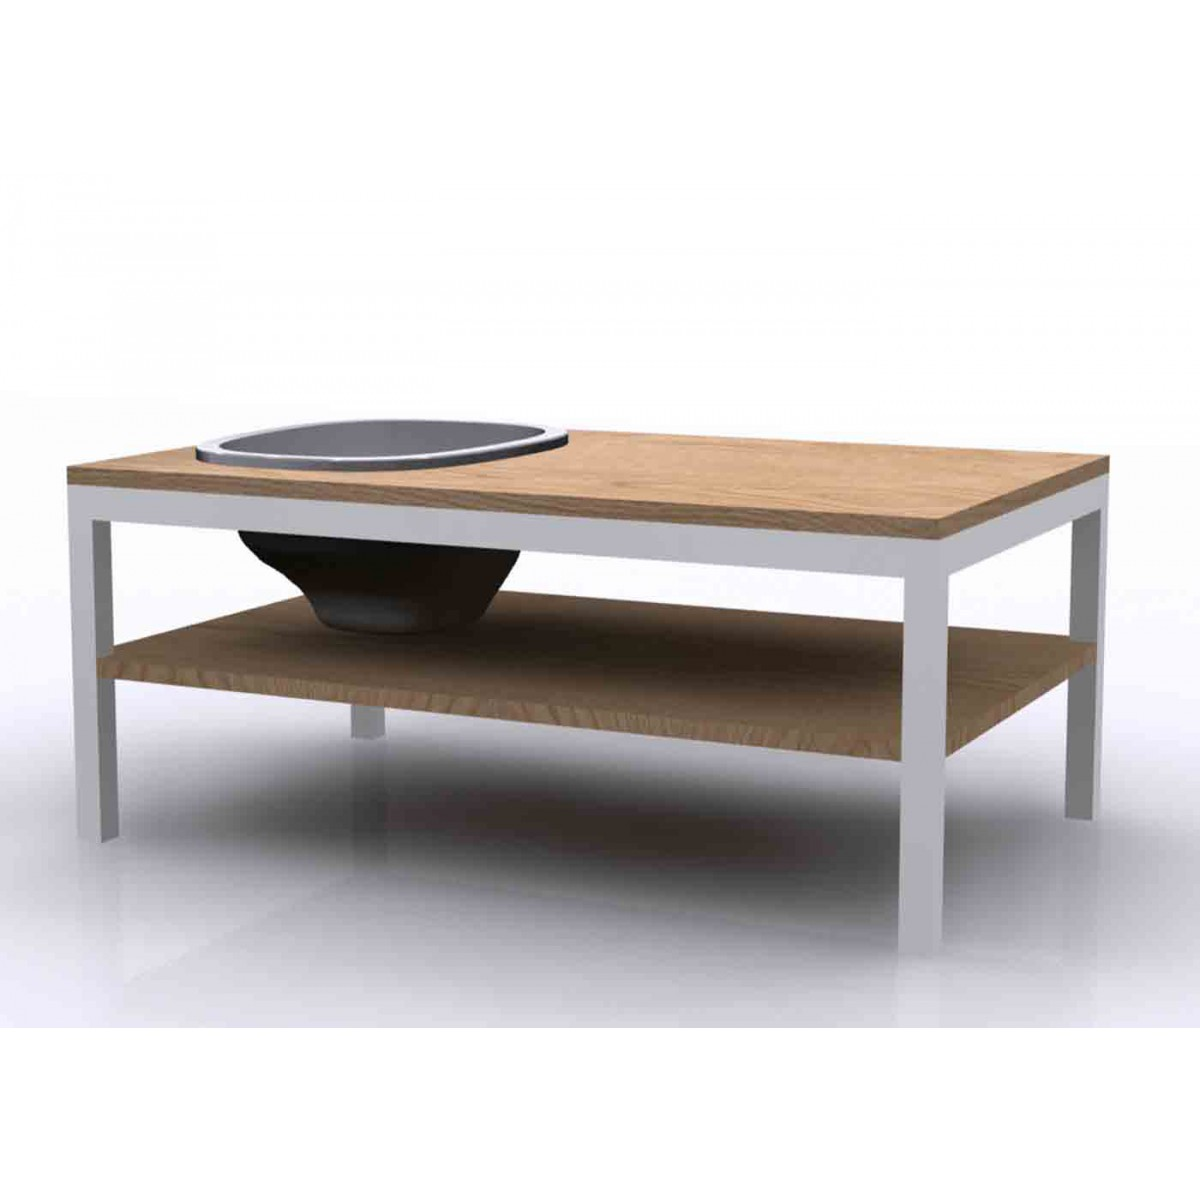 Table Basse Originale En Bois u2013 Ezooq com # Table Basse Originale En Bois